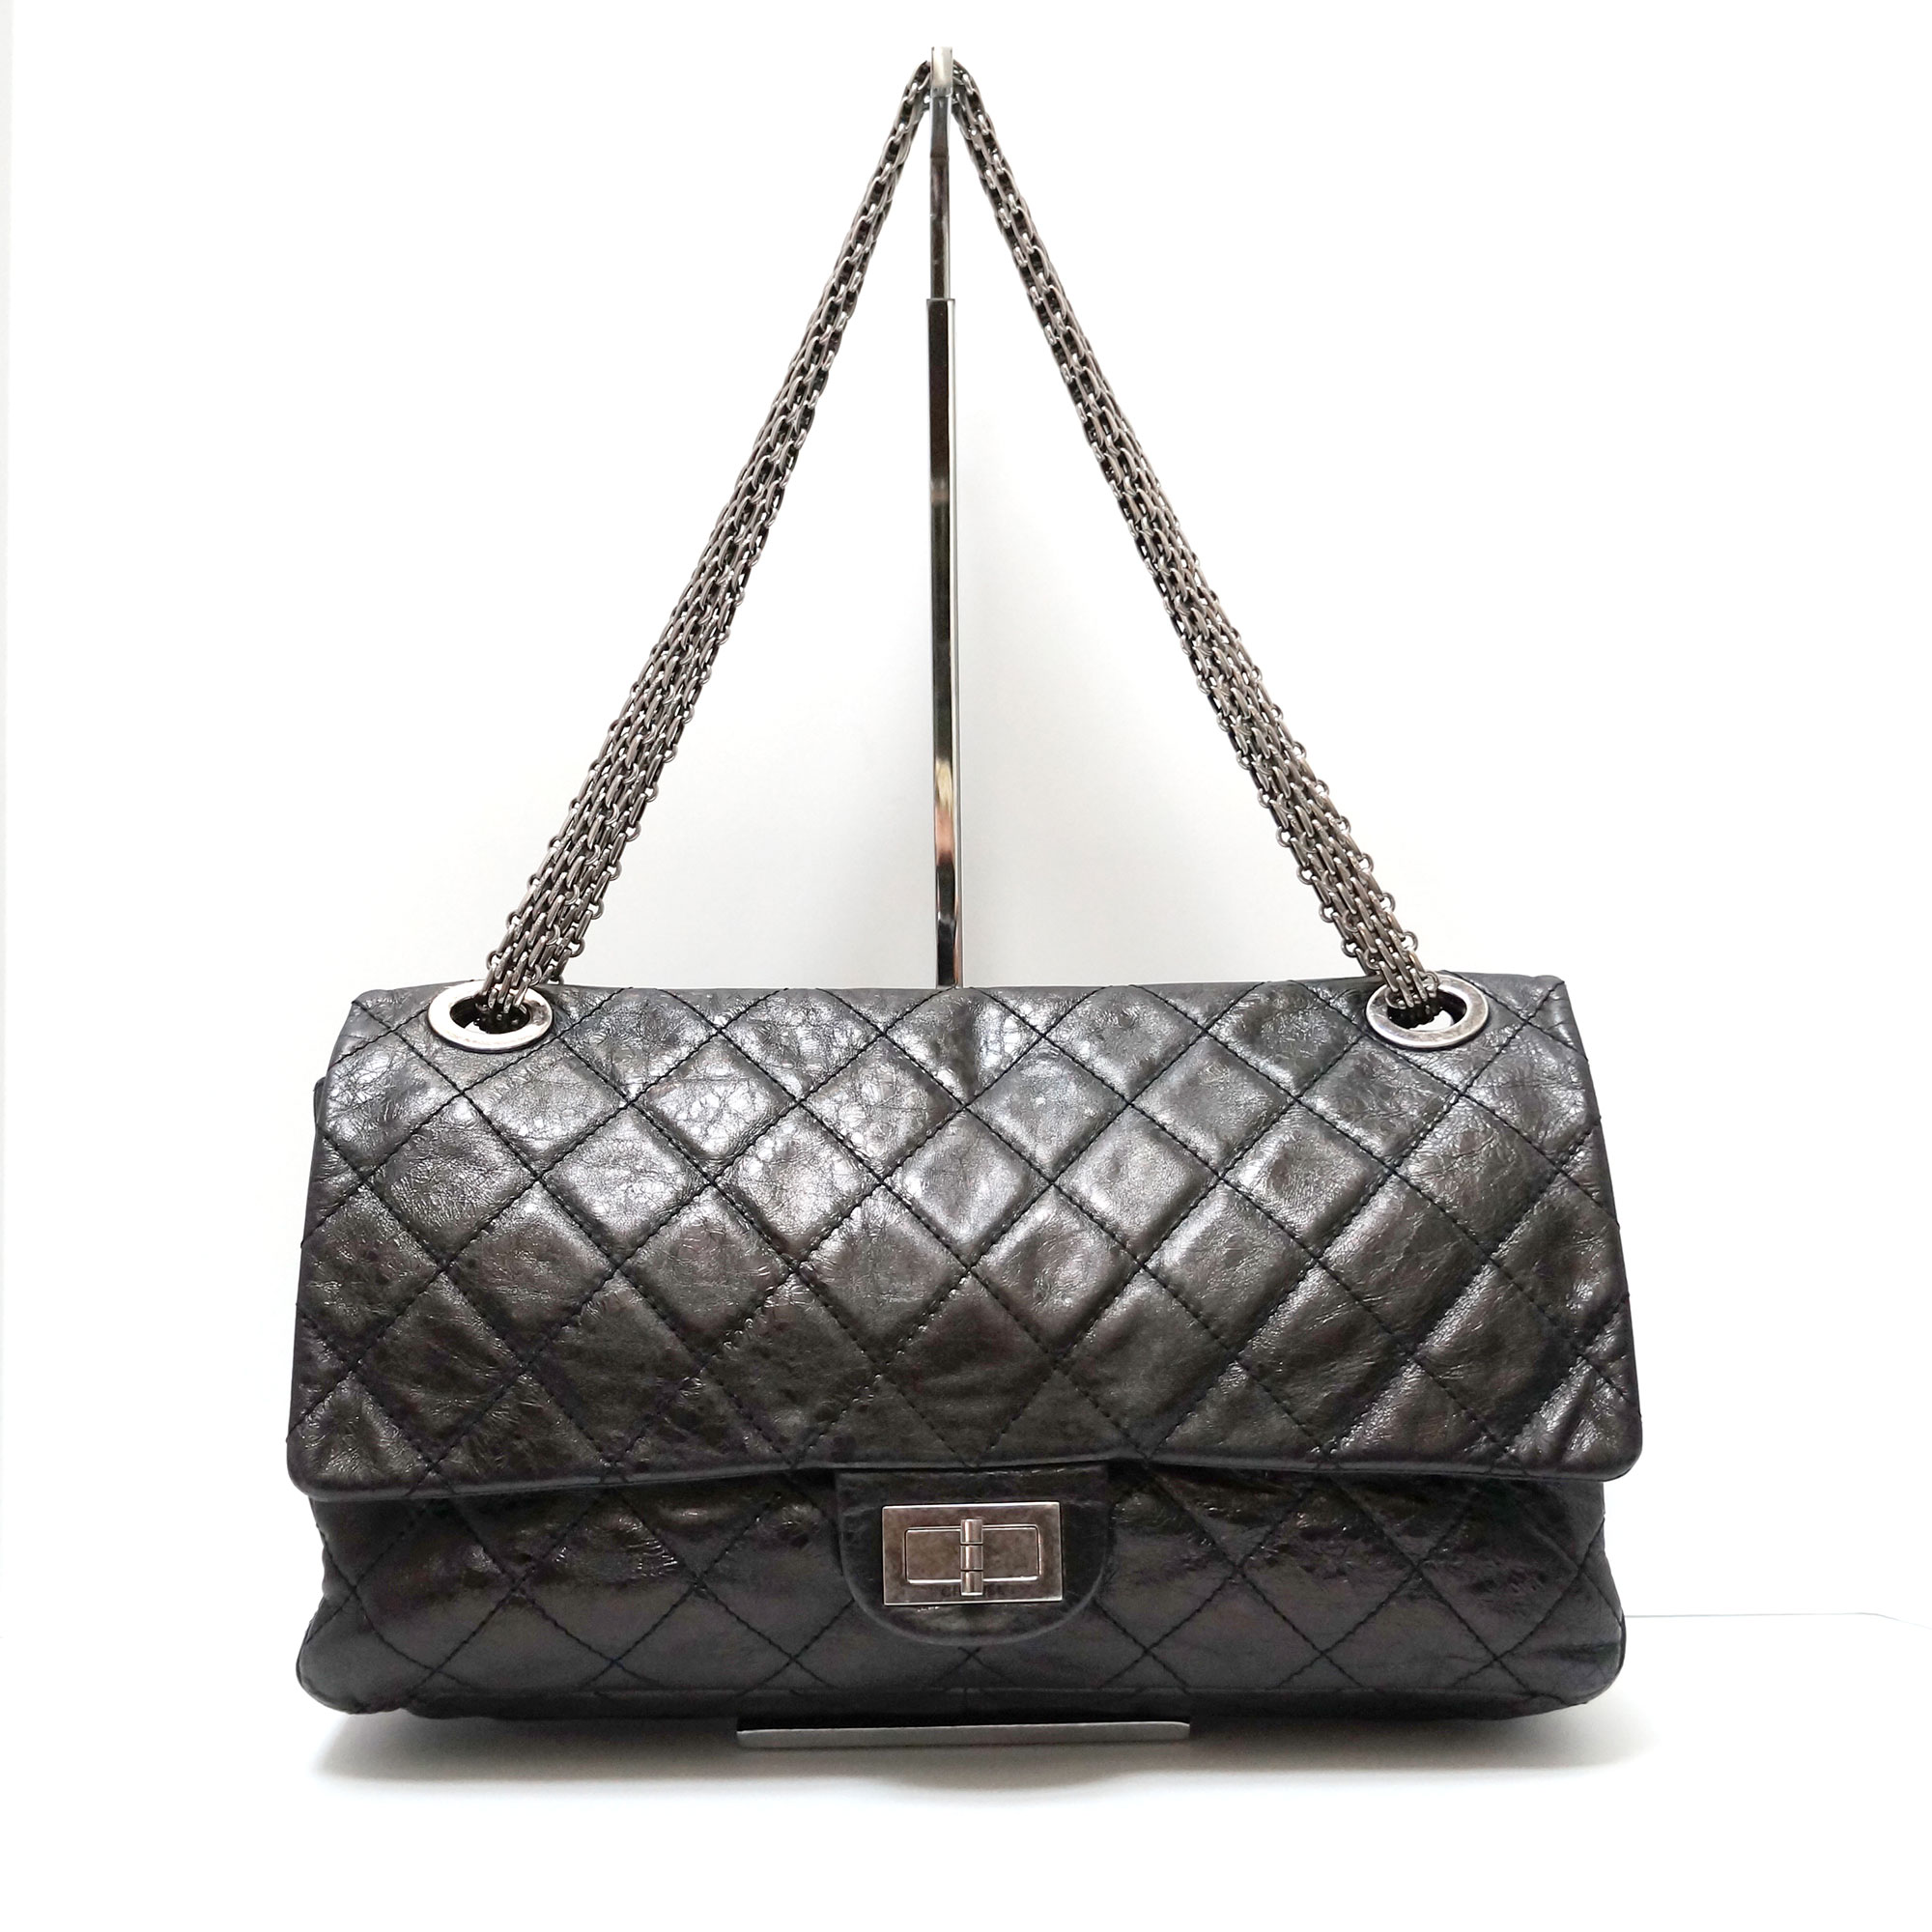 0b12cbe81da6 Chanel 2.55 Reissue Jumbo 228 Black Aged Leather Bag | | My Personal ...